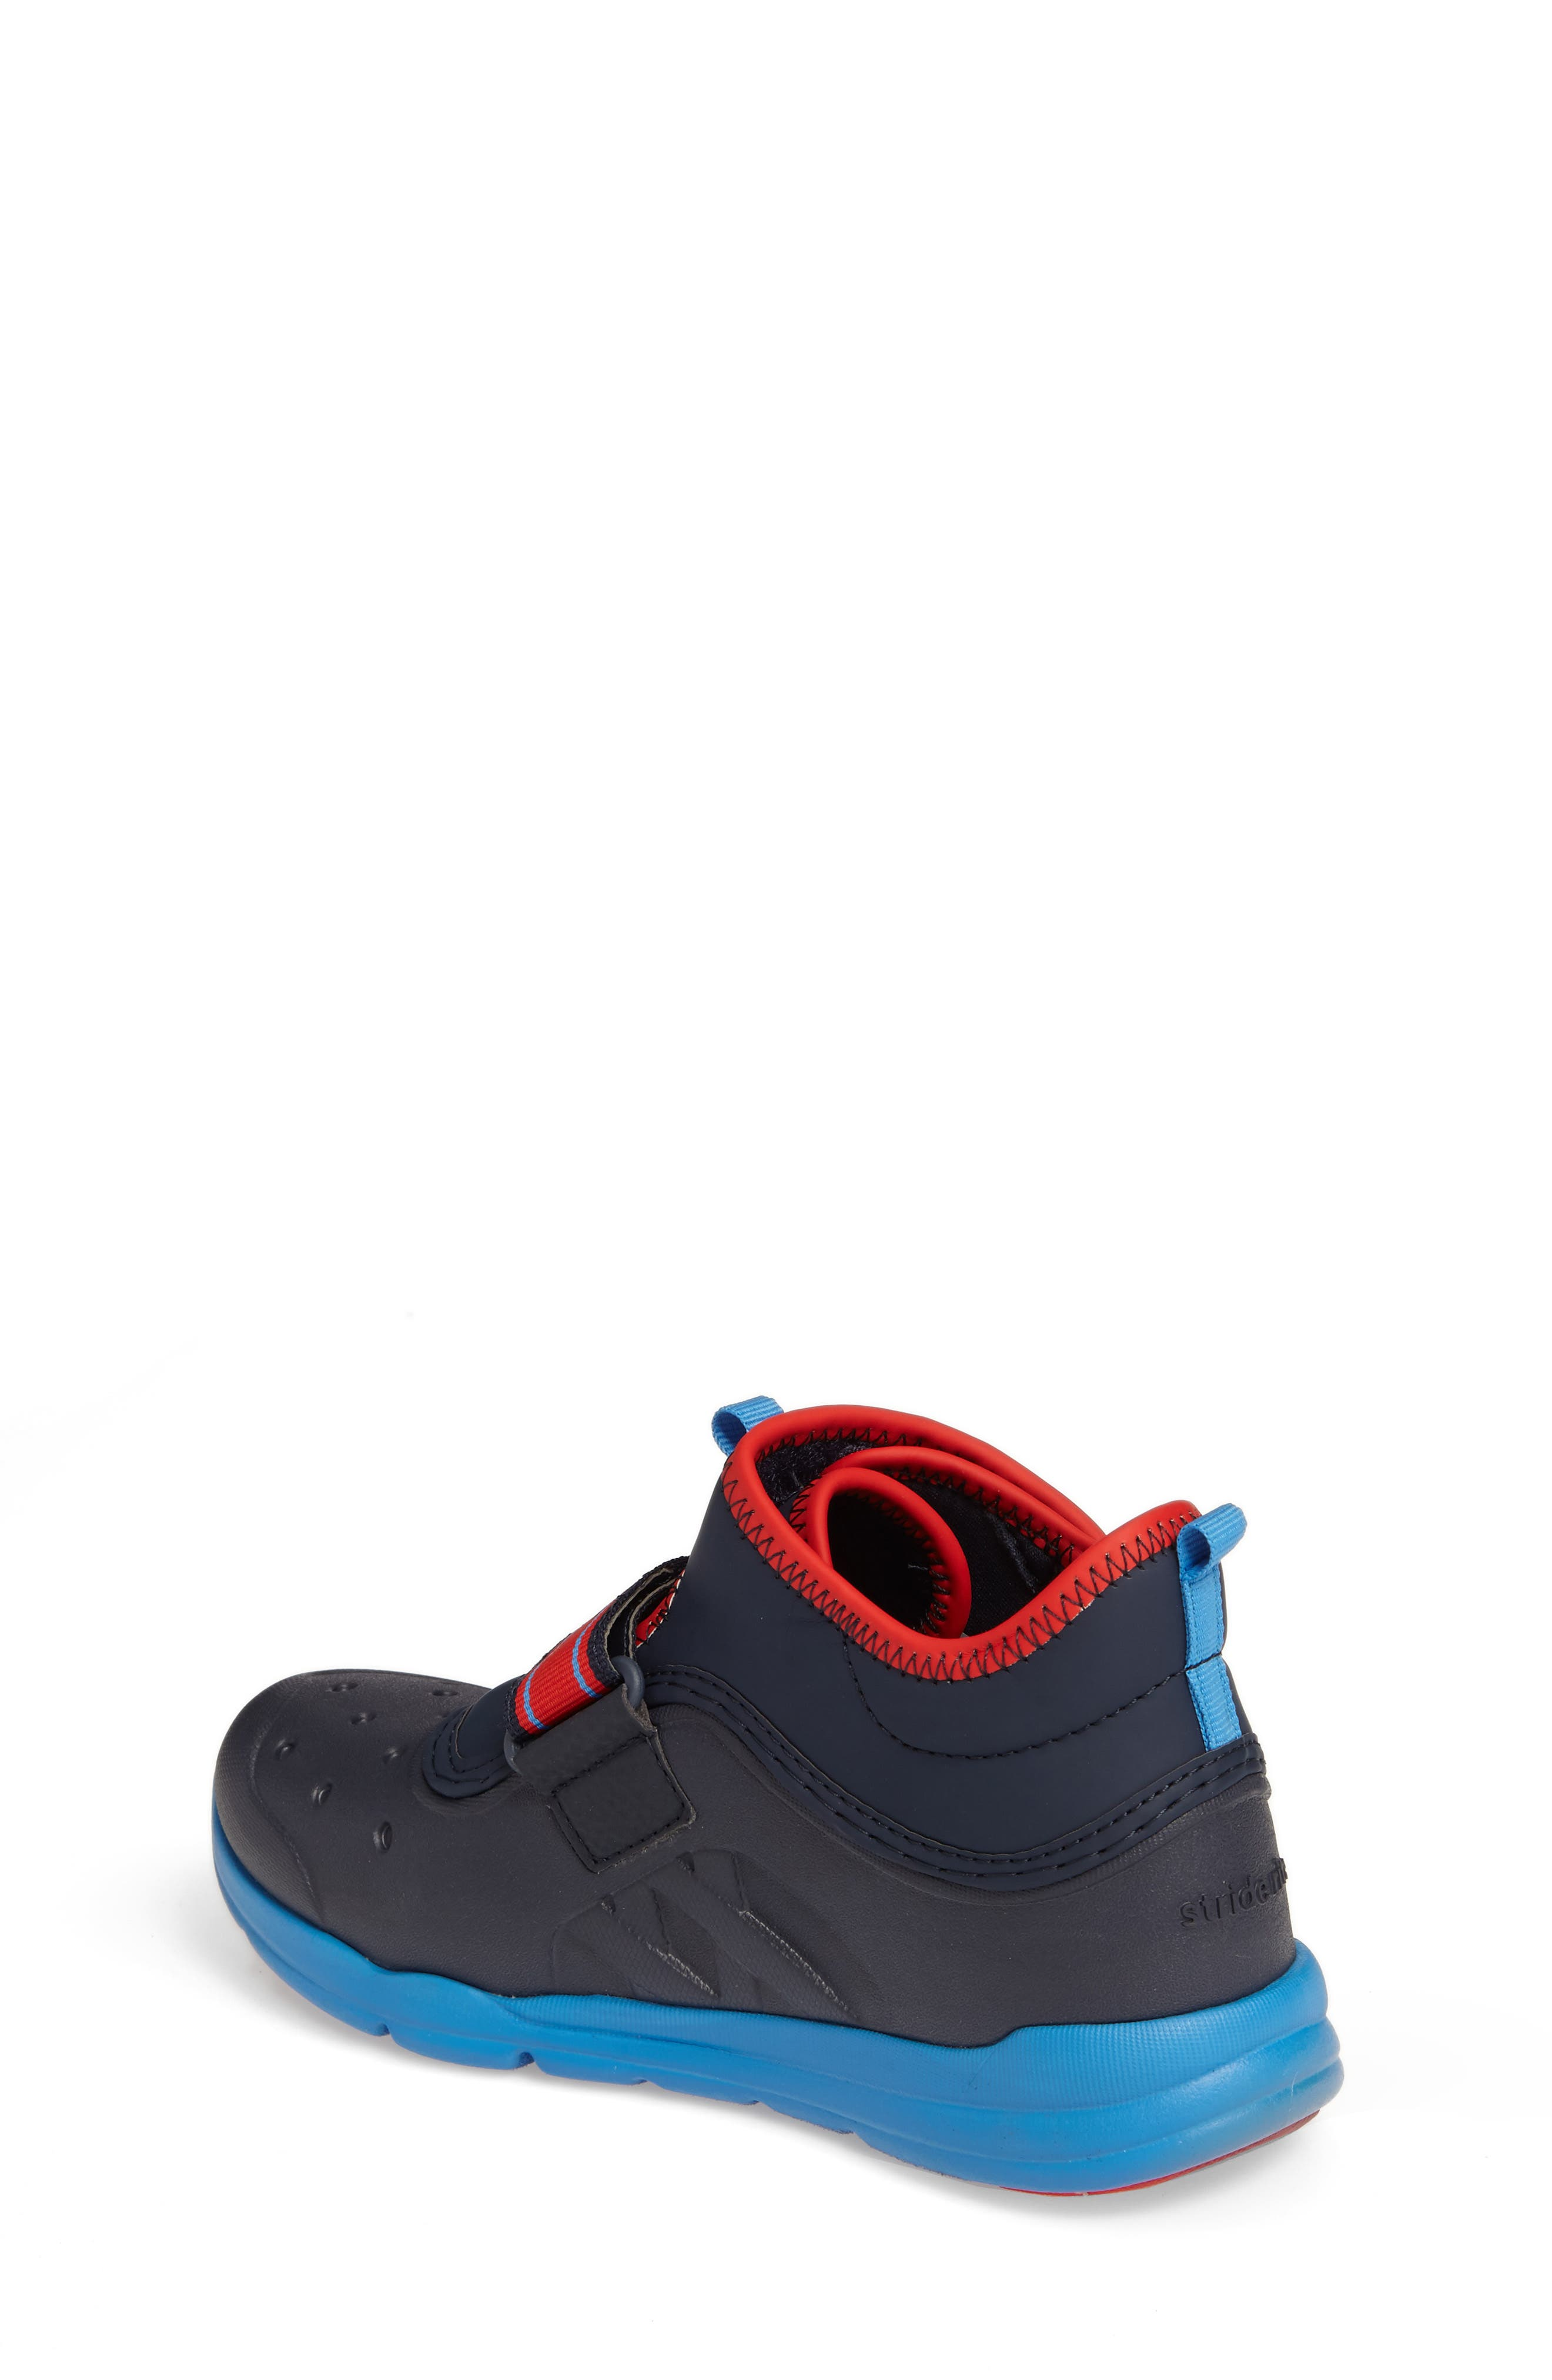 Made2Play<sup>®</sup> Phibian Mid Top Sneaker,                             Alternate thumbnail 4, color,